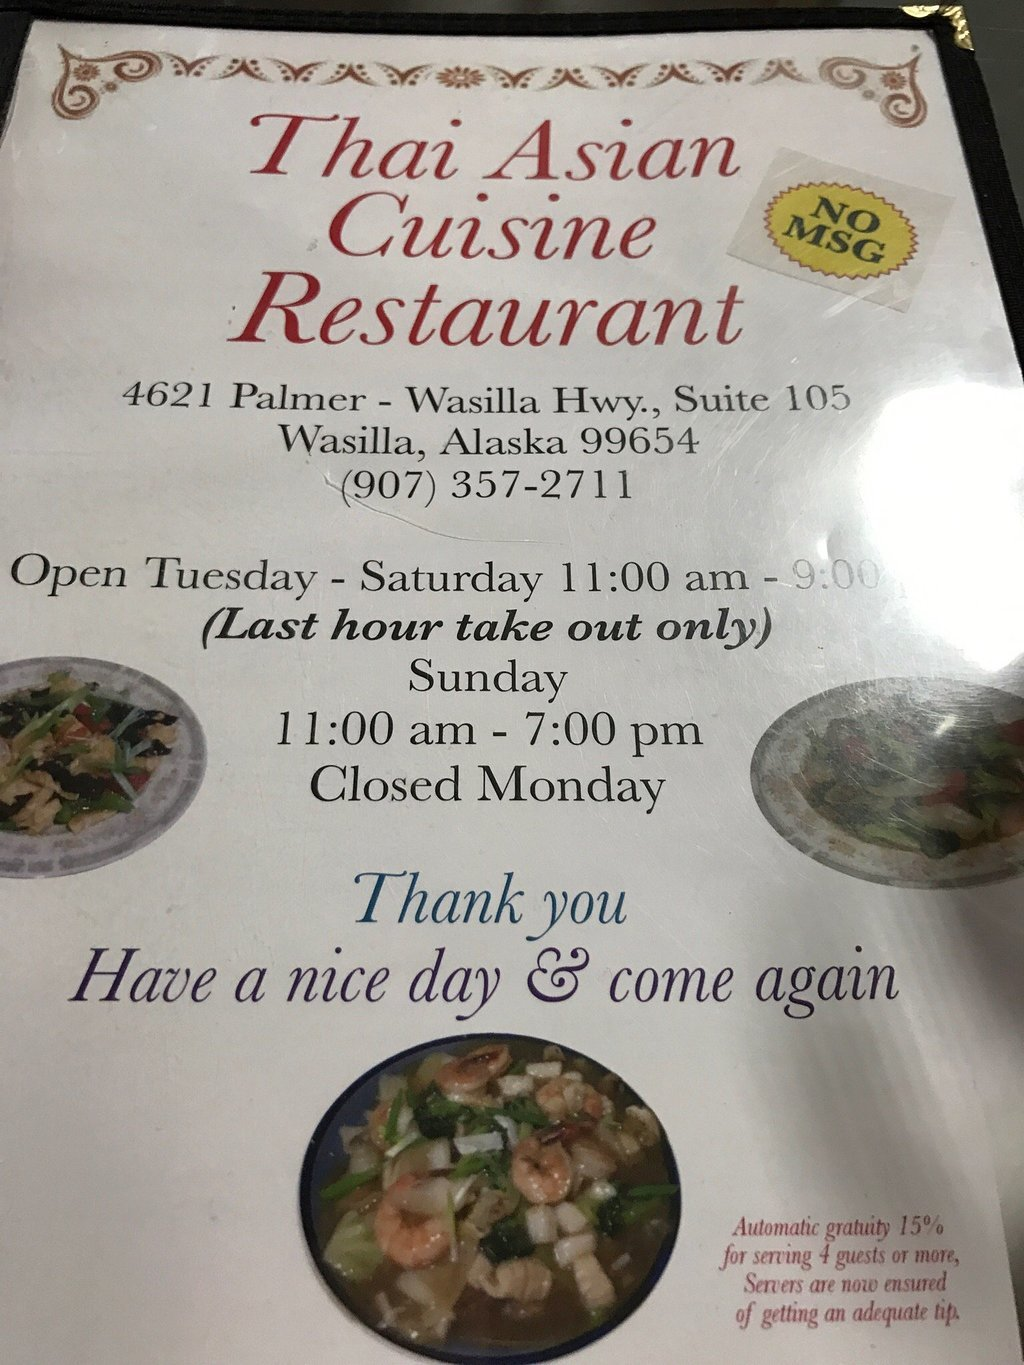 tdai Asian Cuisine Restaurant